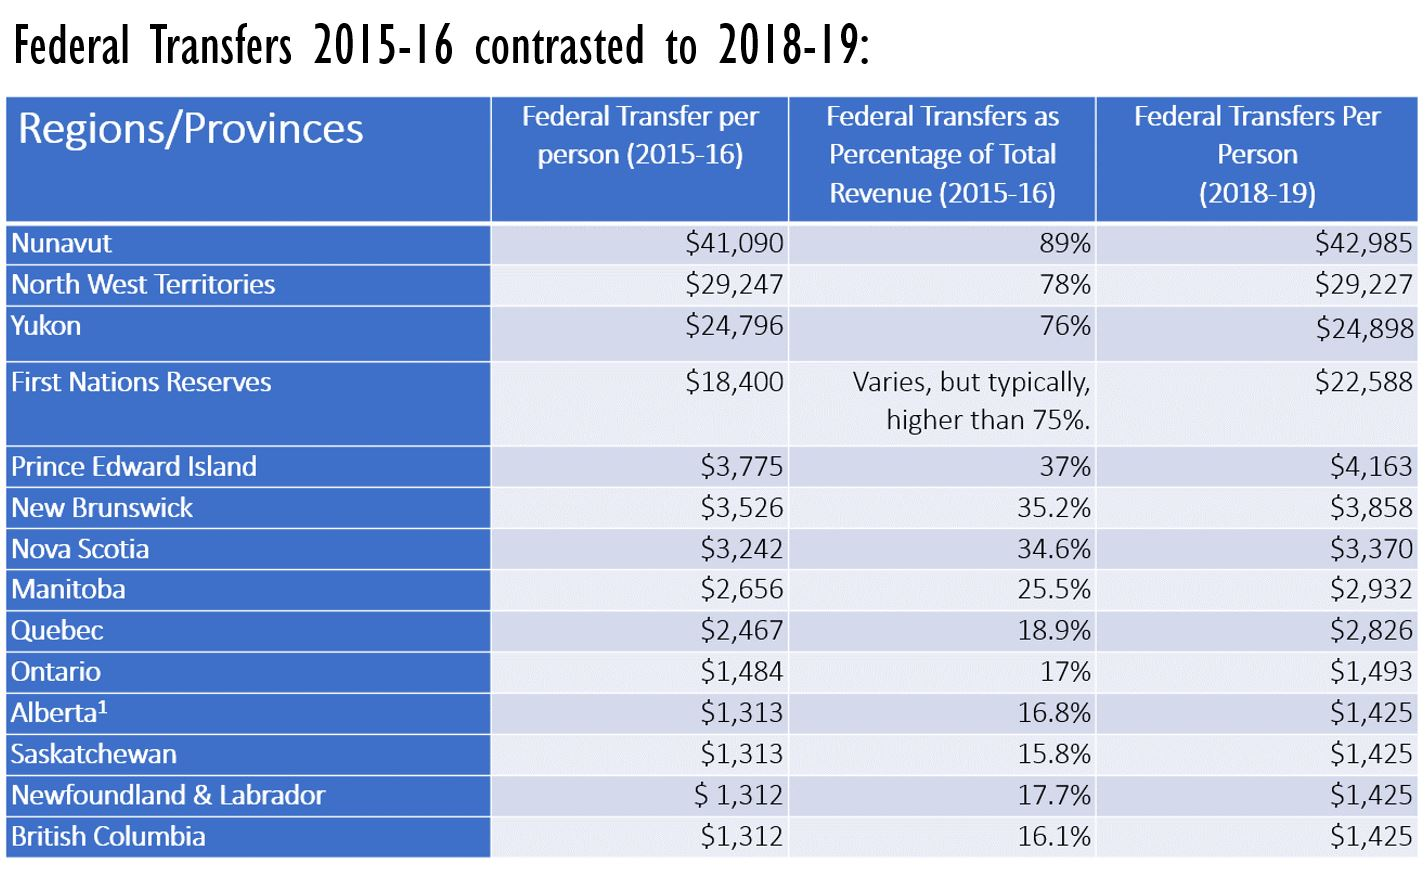 Consolidated Table of Federal Transfers (by Region/Province) for 2015-16 compared to 2018-19. Based on Reference Tables and Reports of the Department of Finance, 2017. Consolidated by: Anya Hageman & Pauline Galoustian [118]